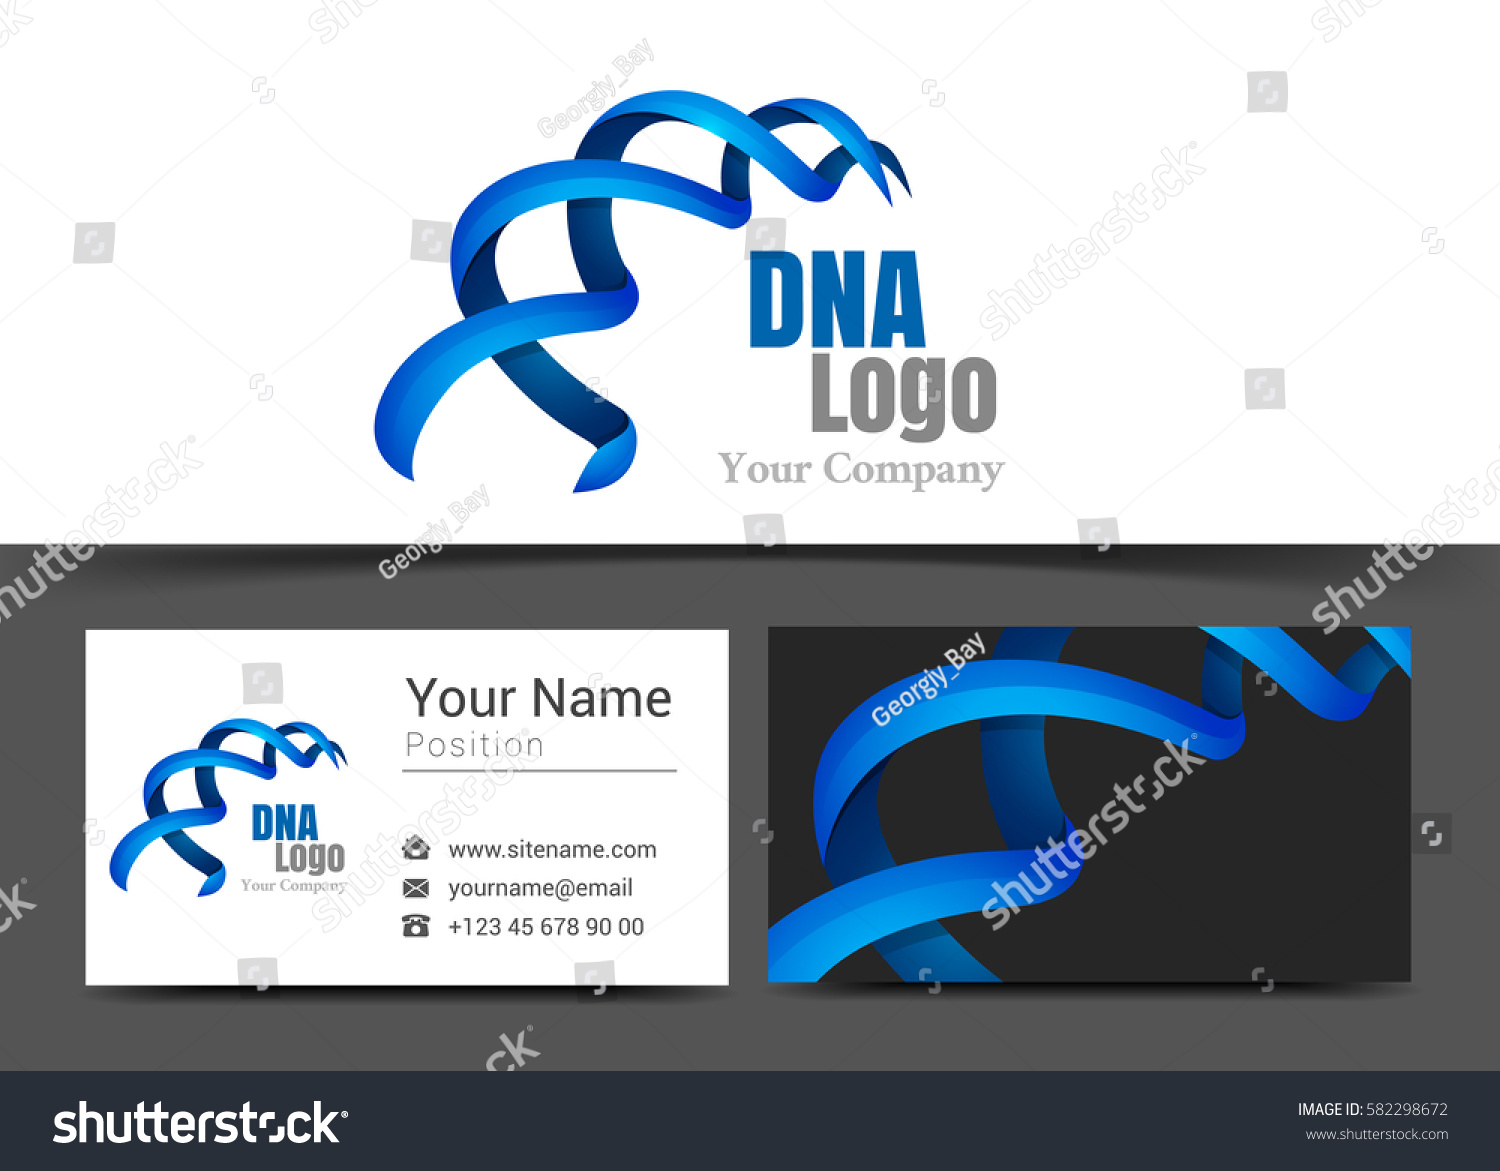 Blue Dna Corporate Logo Business Card Stock Vector HD (Royalty Free ...